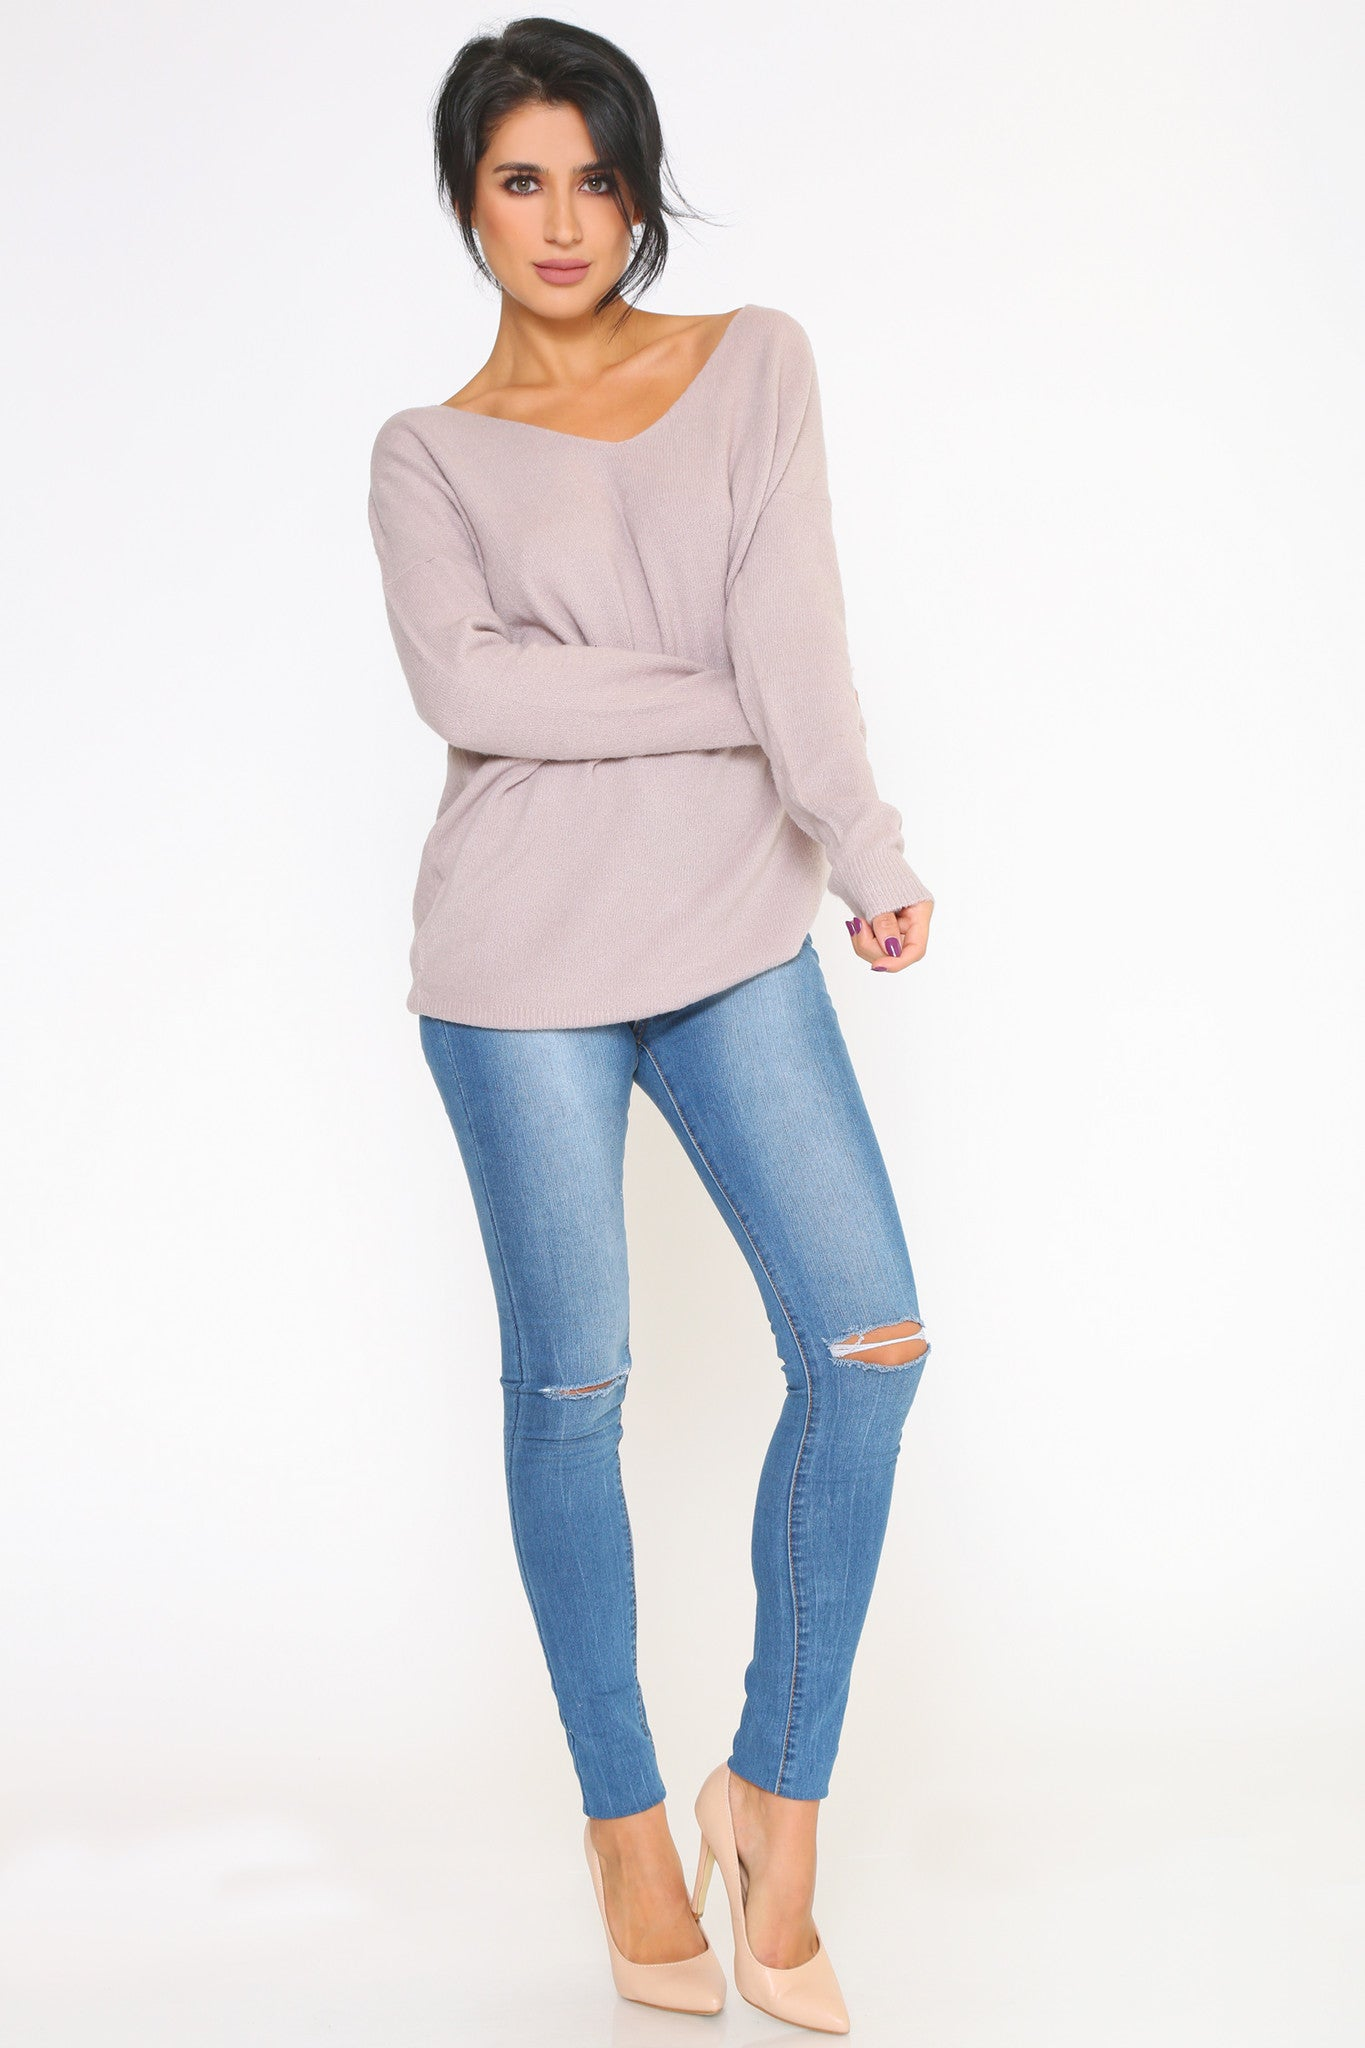 LUCIA SWEATER - Glam Envy - 1